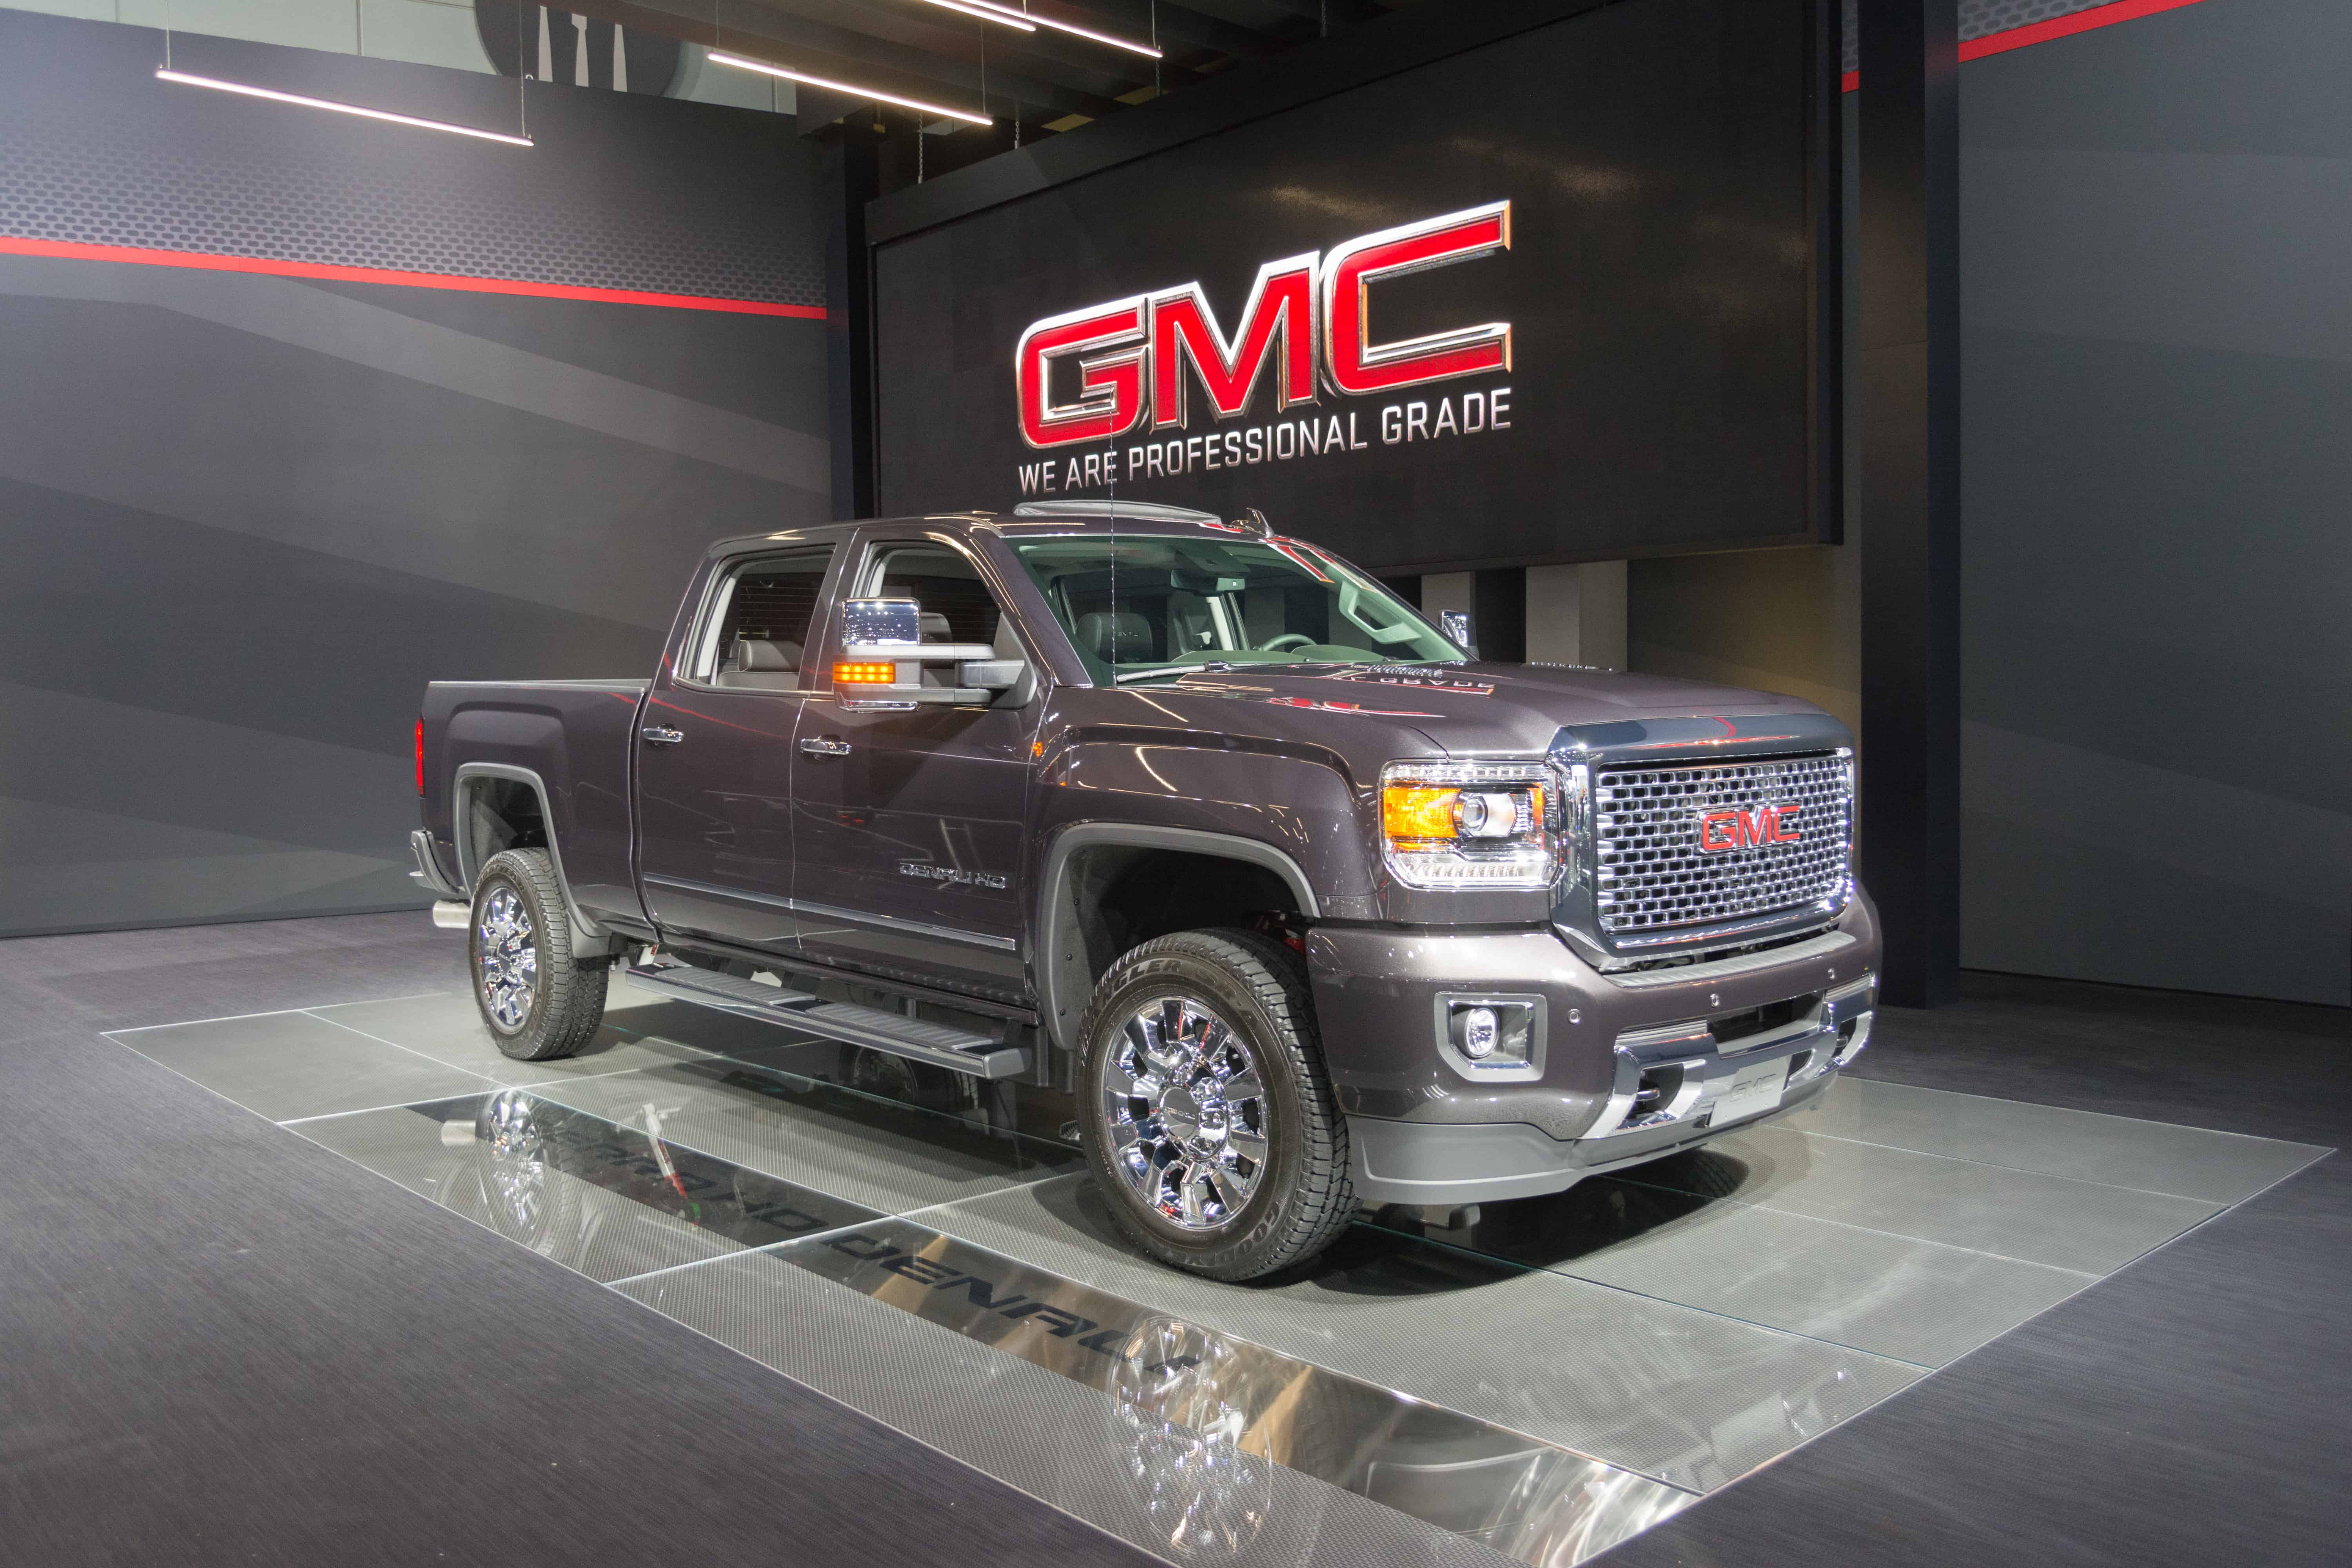 GM Recalls GMC Sierra 3500 And Chevrolet Silverado 3500 Trucks for Fueling Issue